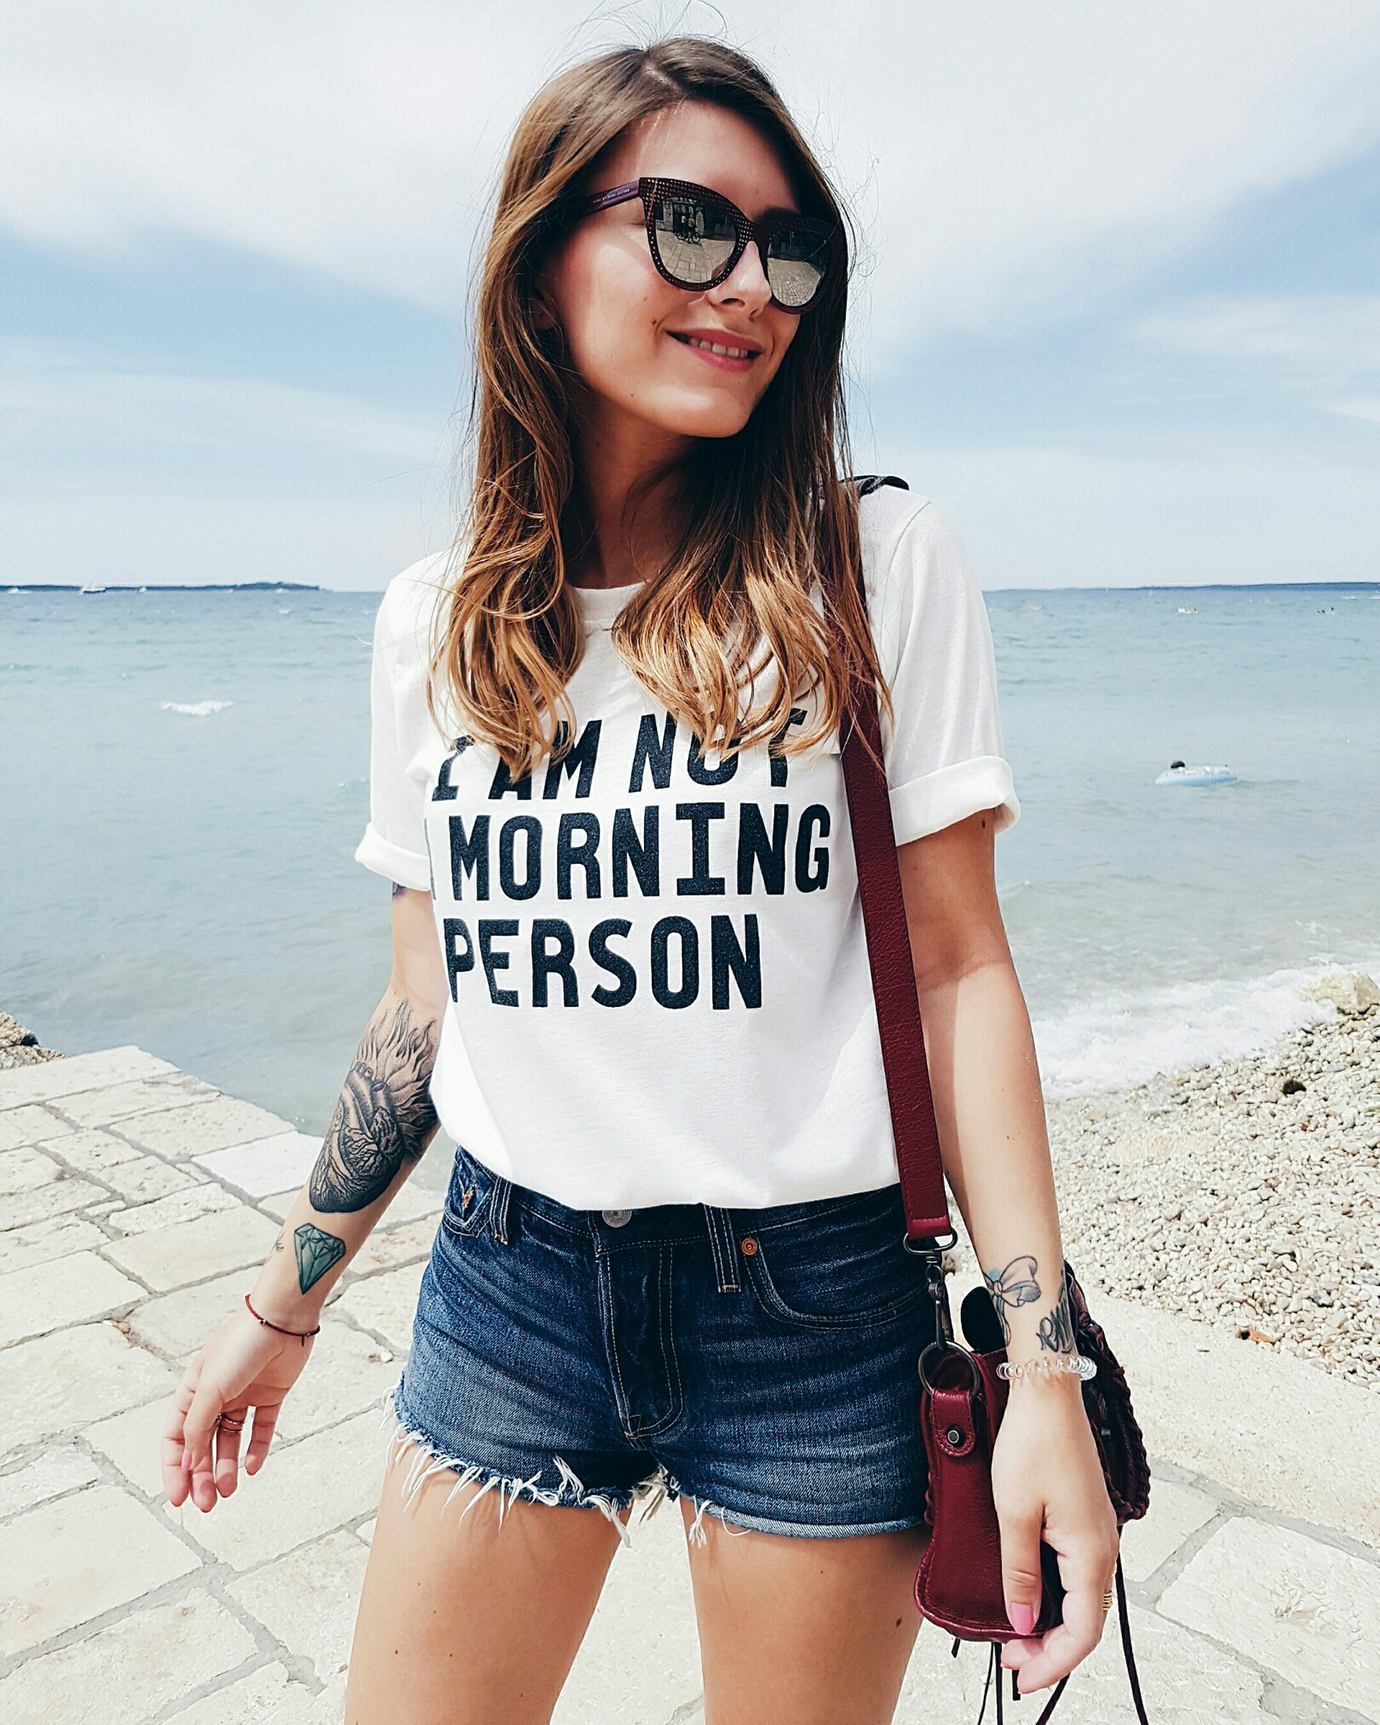 7things_30_not_a_morning_person